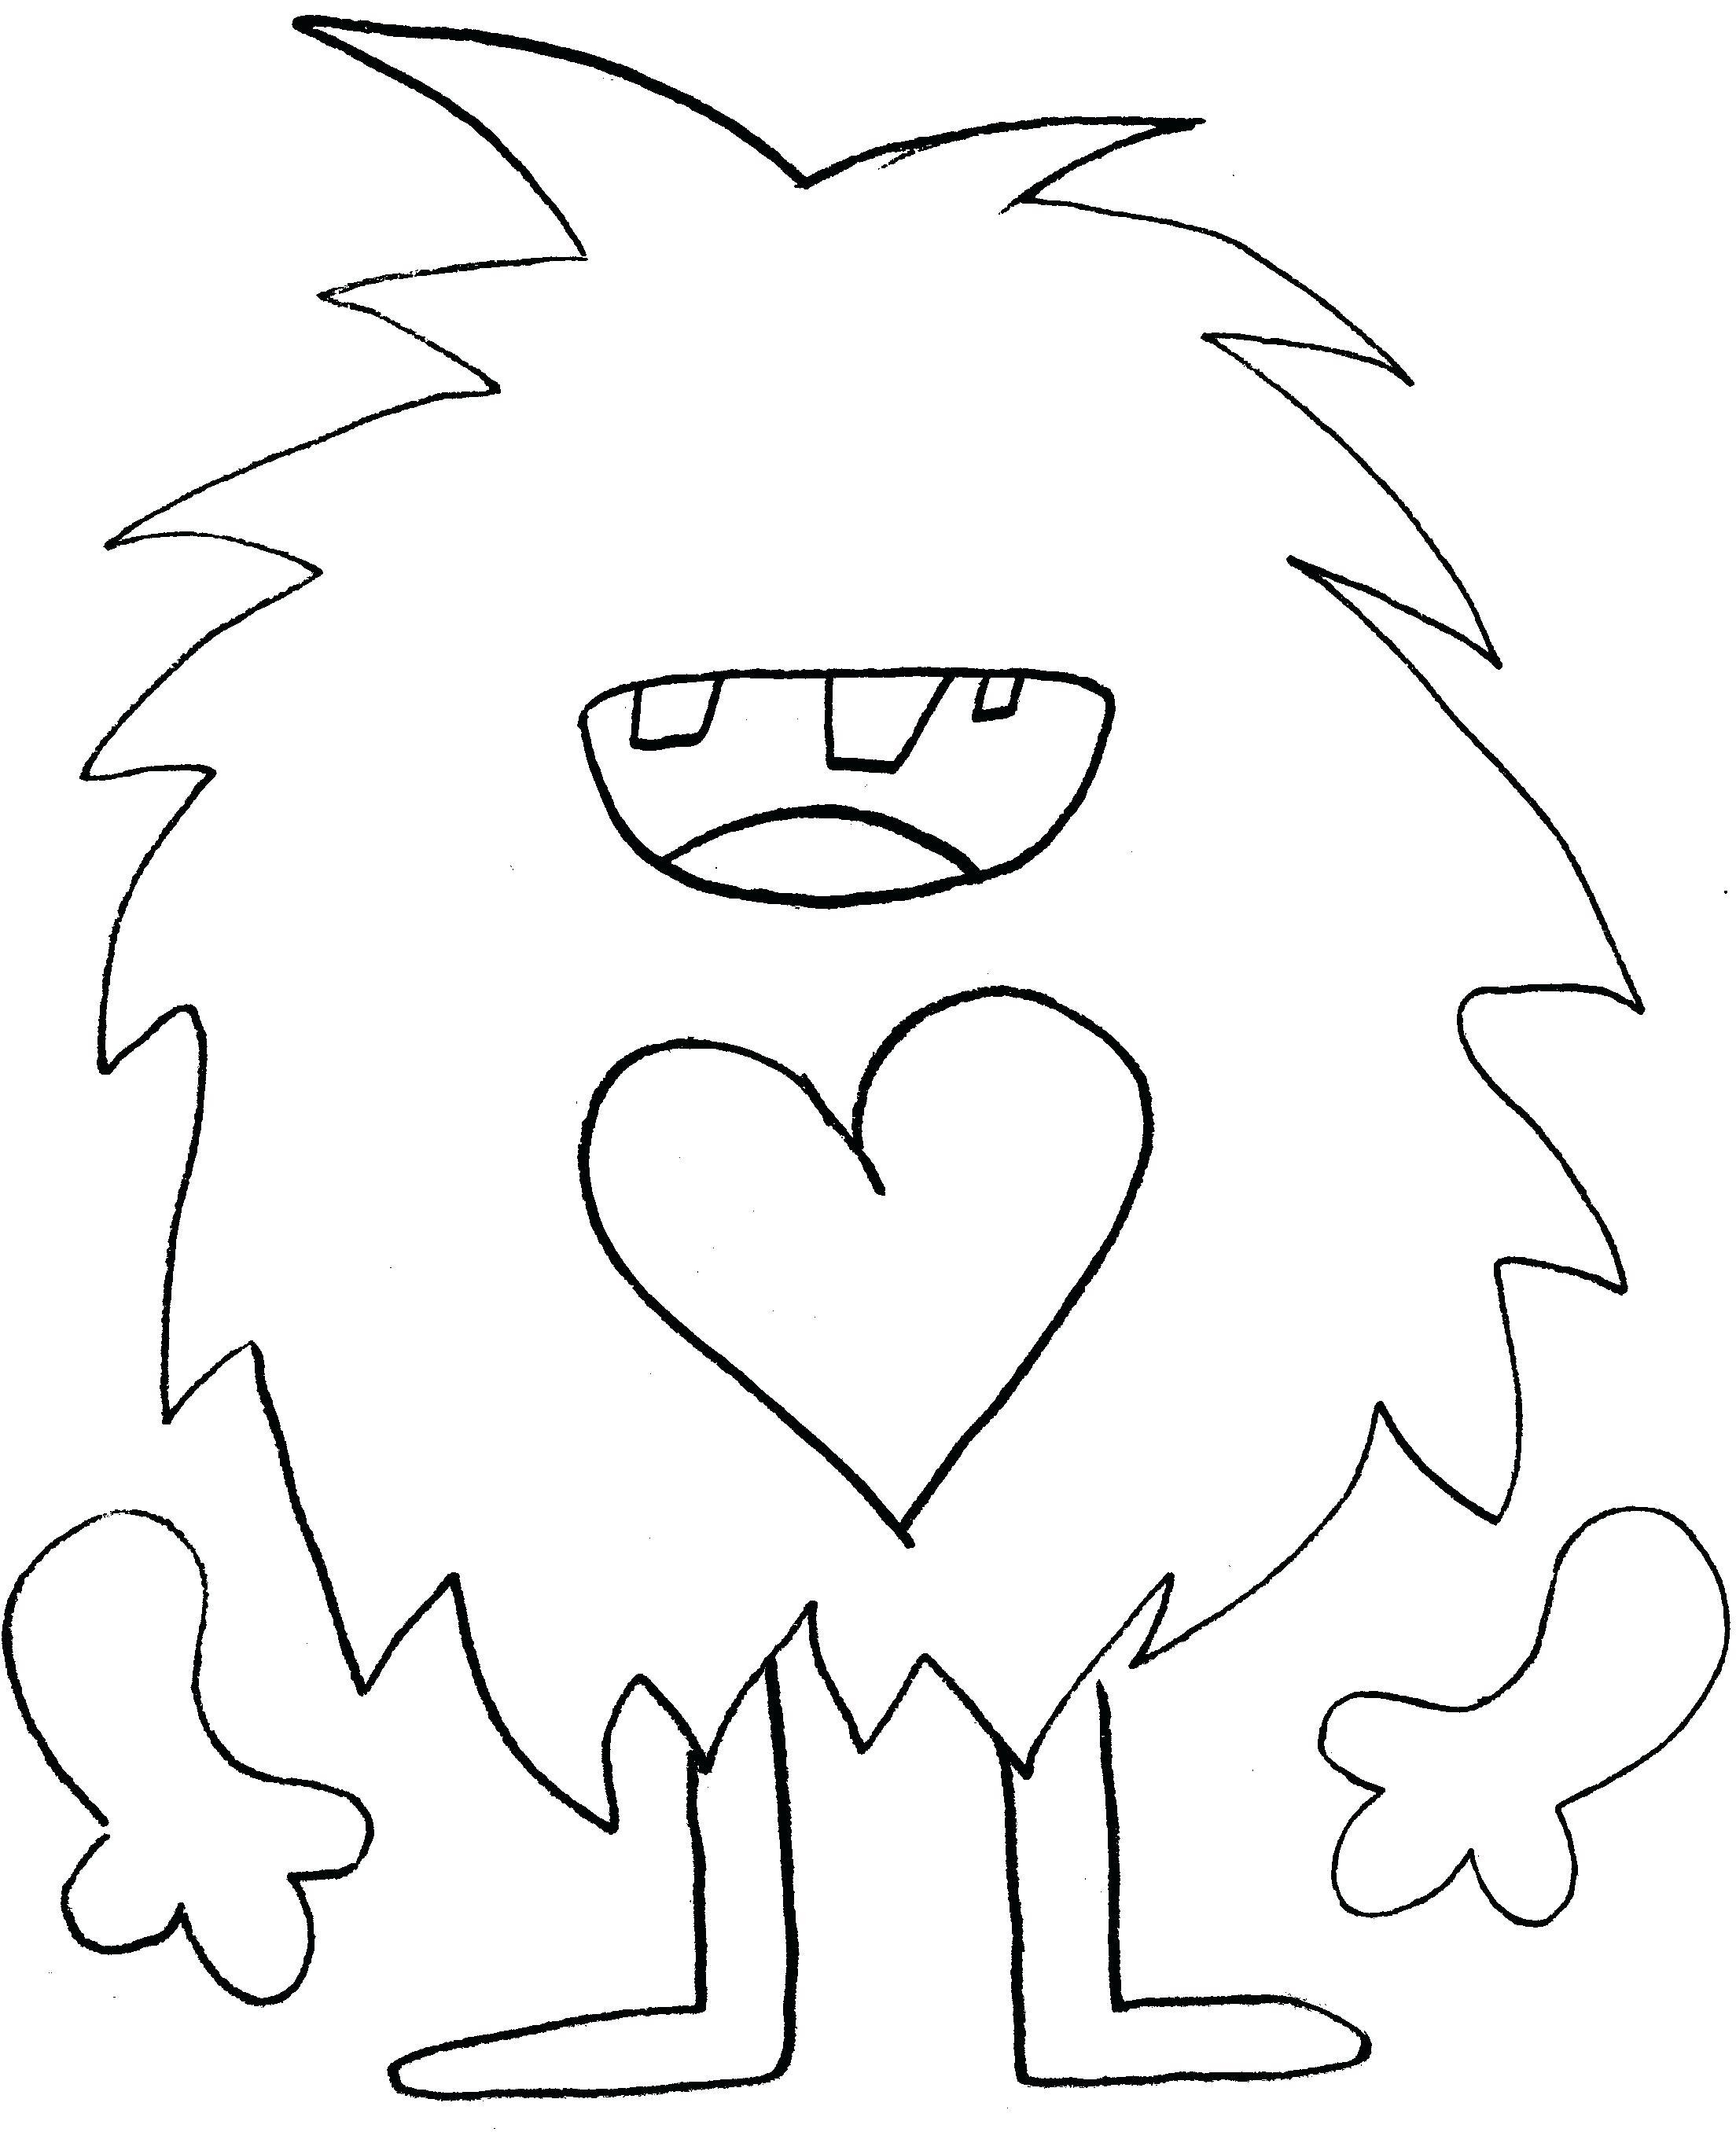 Monster Templates Free Printable Face - Free Printable Monster Templates